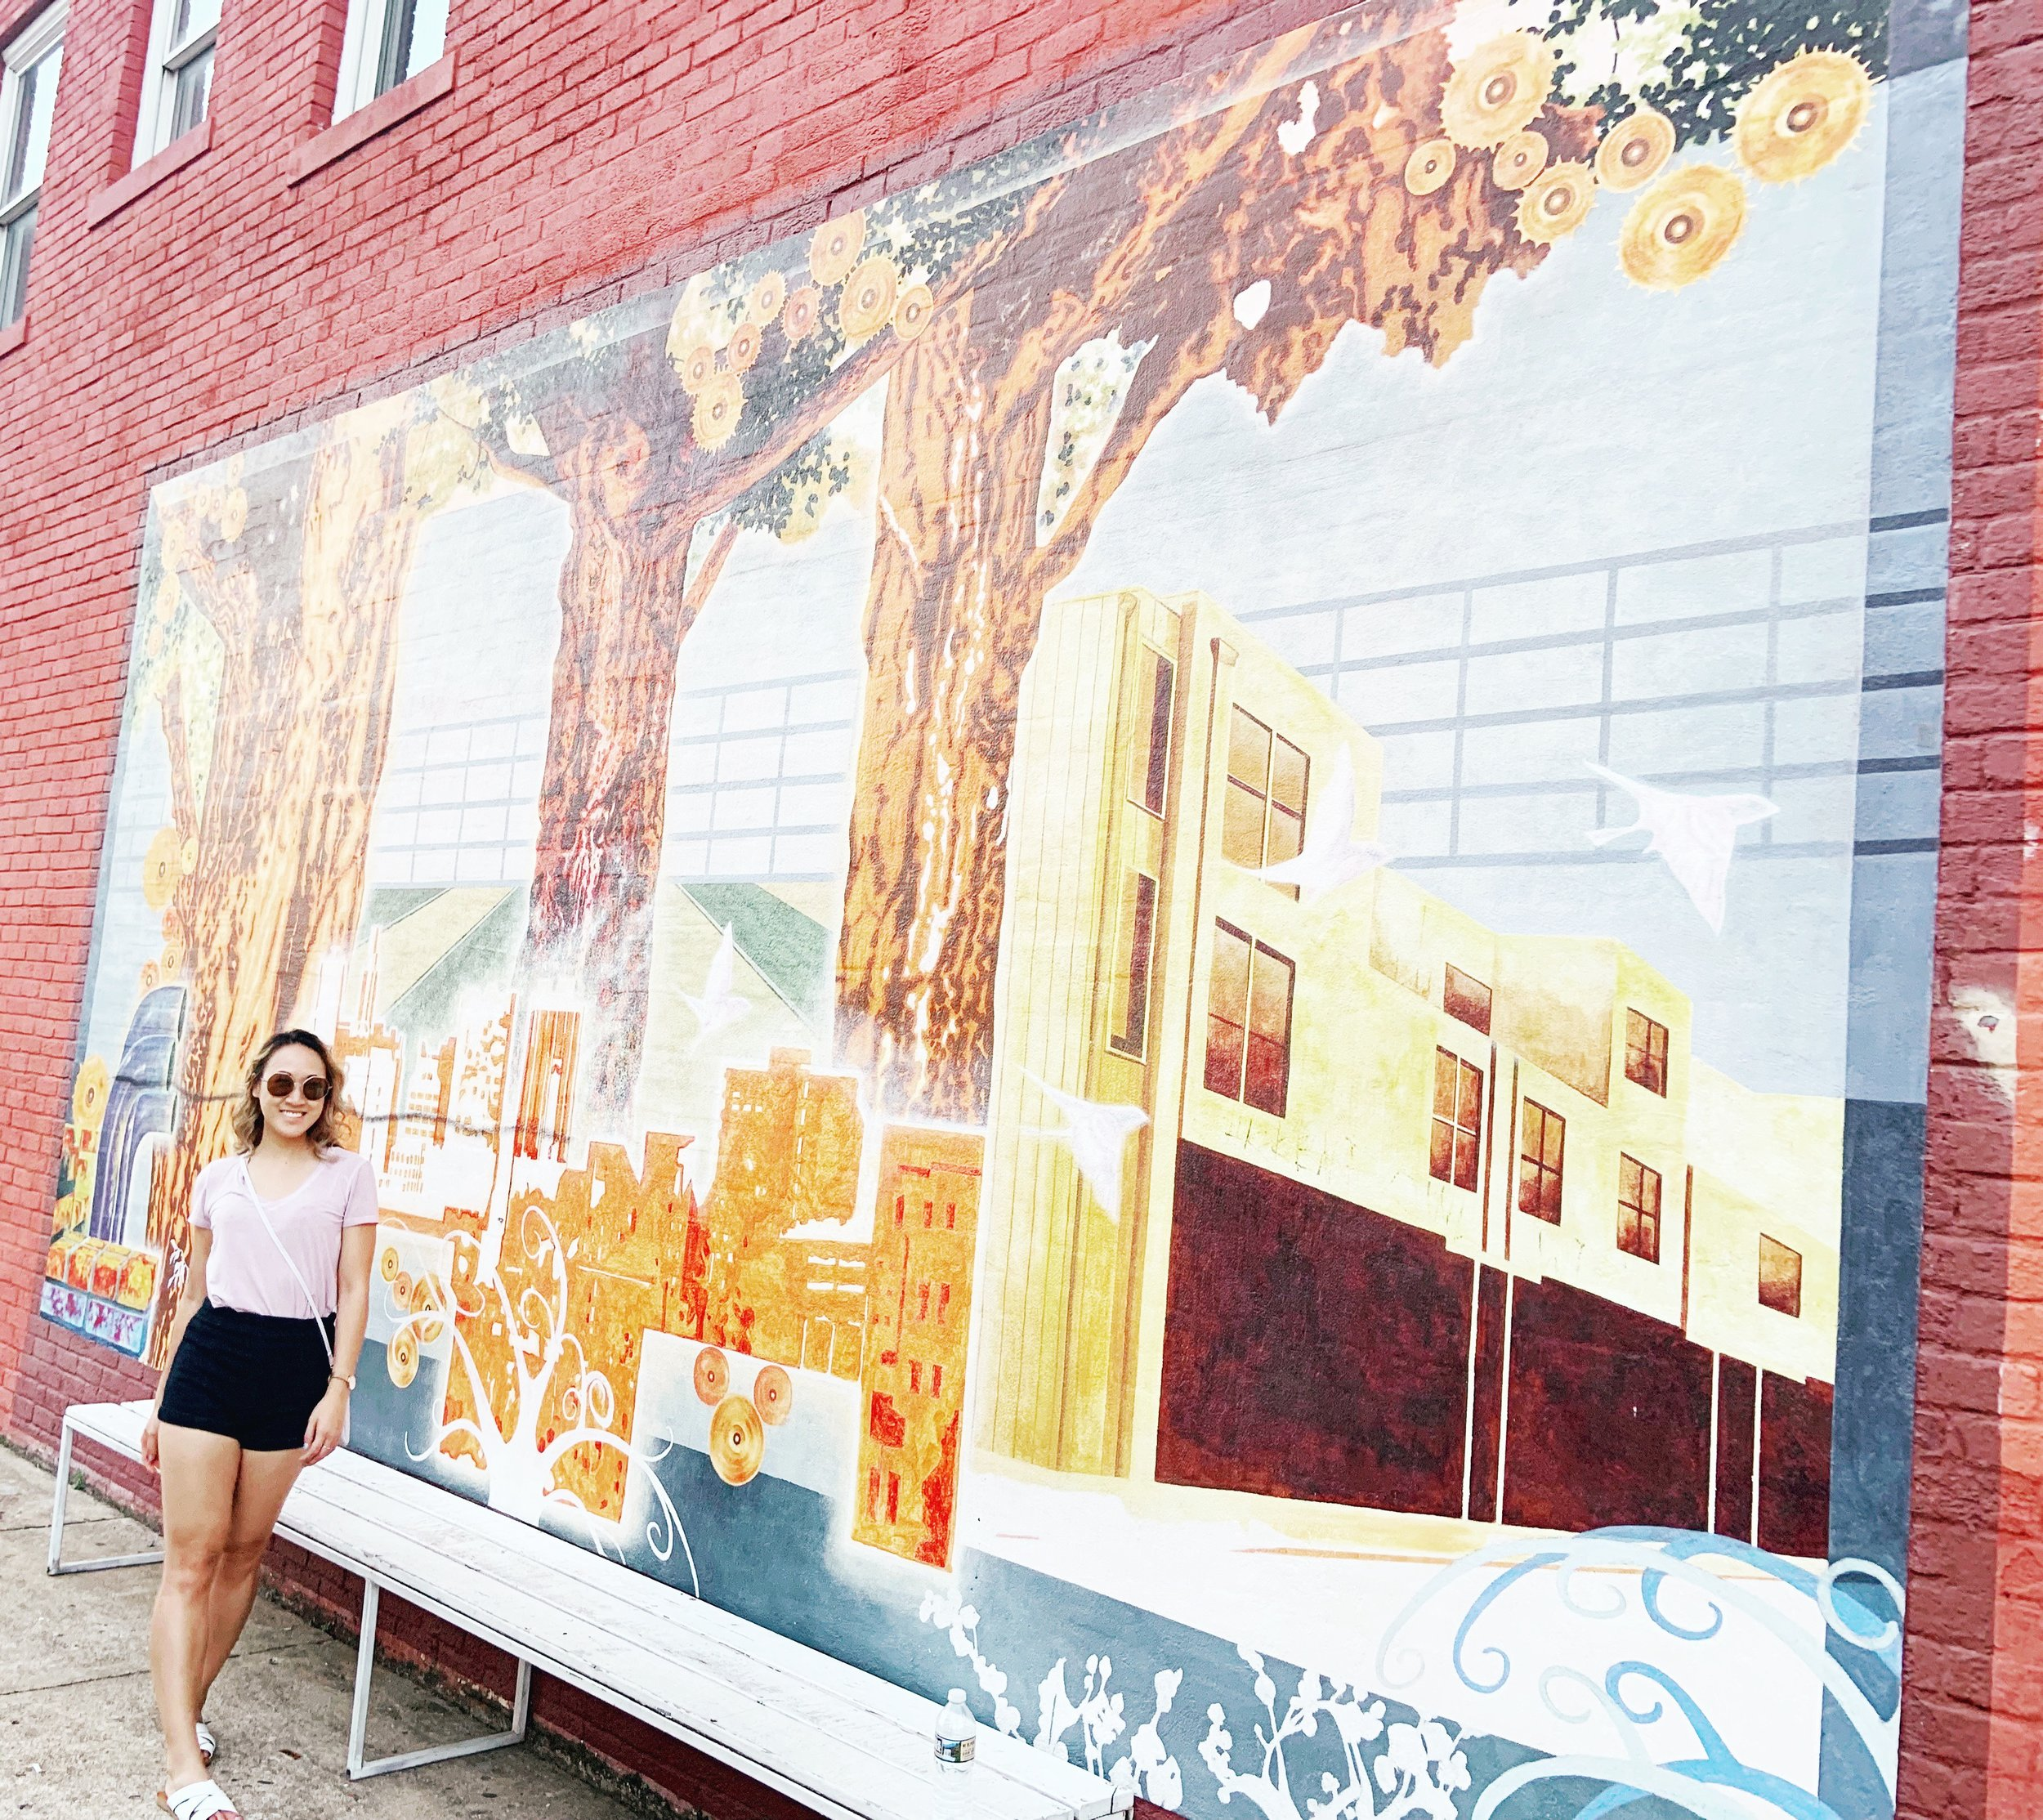 Downtown - Murals, food, and Instagram Things